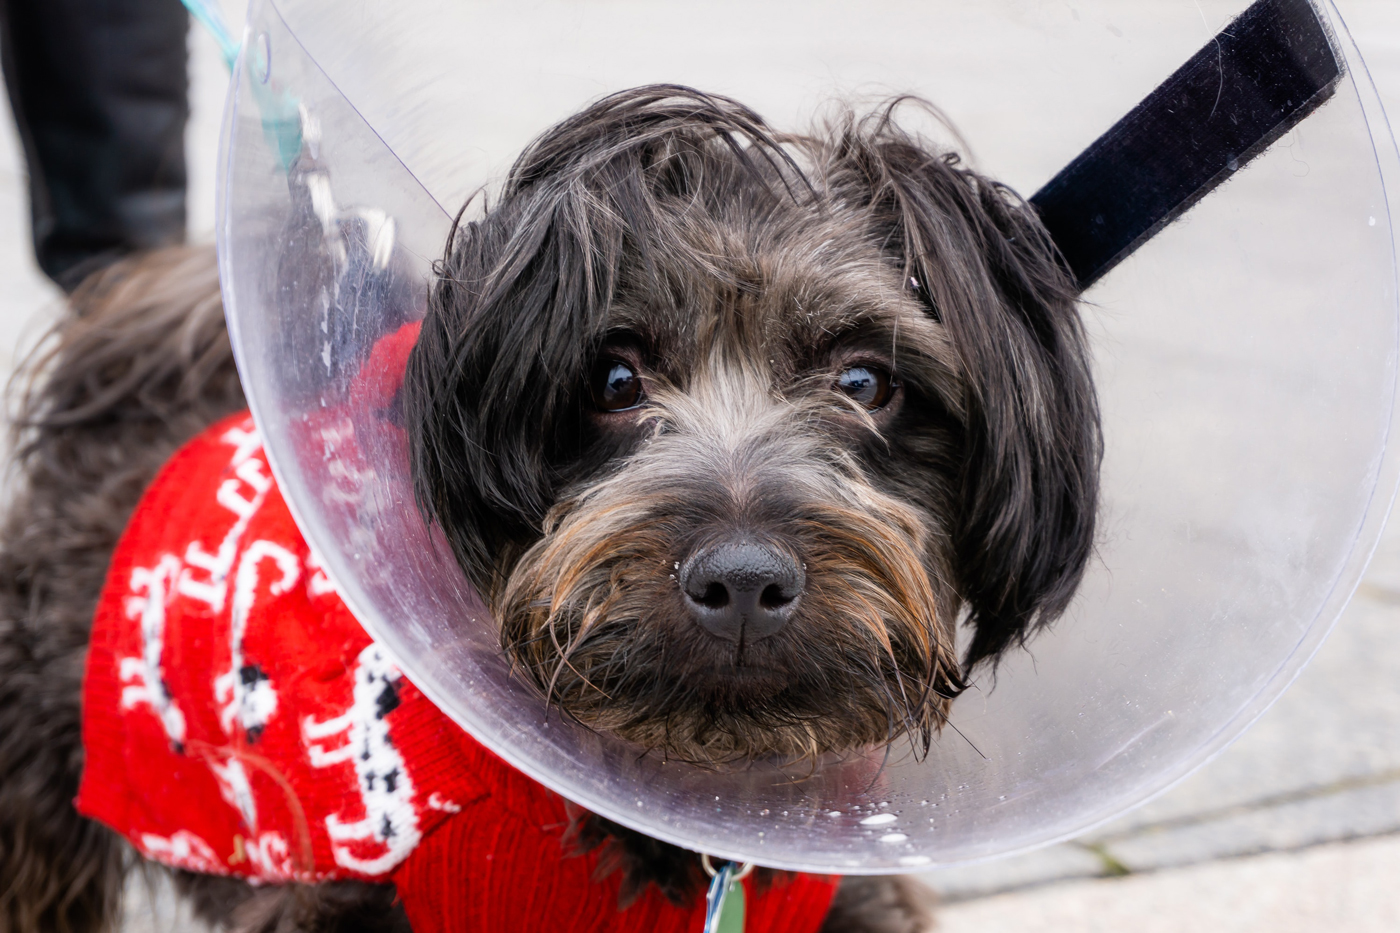 A dog wearing a jumper with a cone on